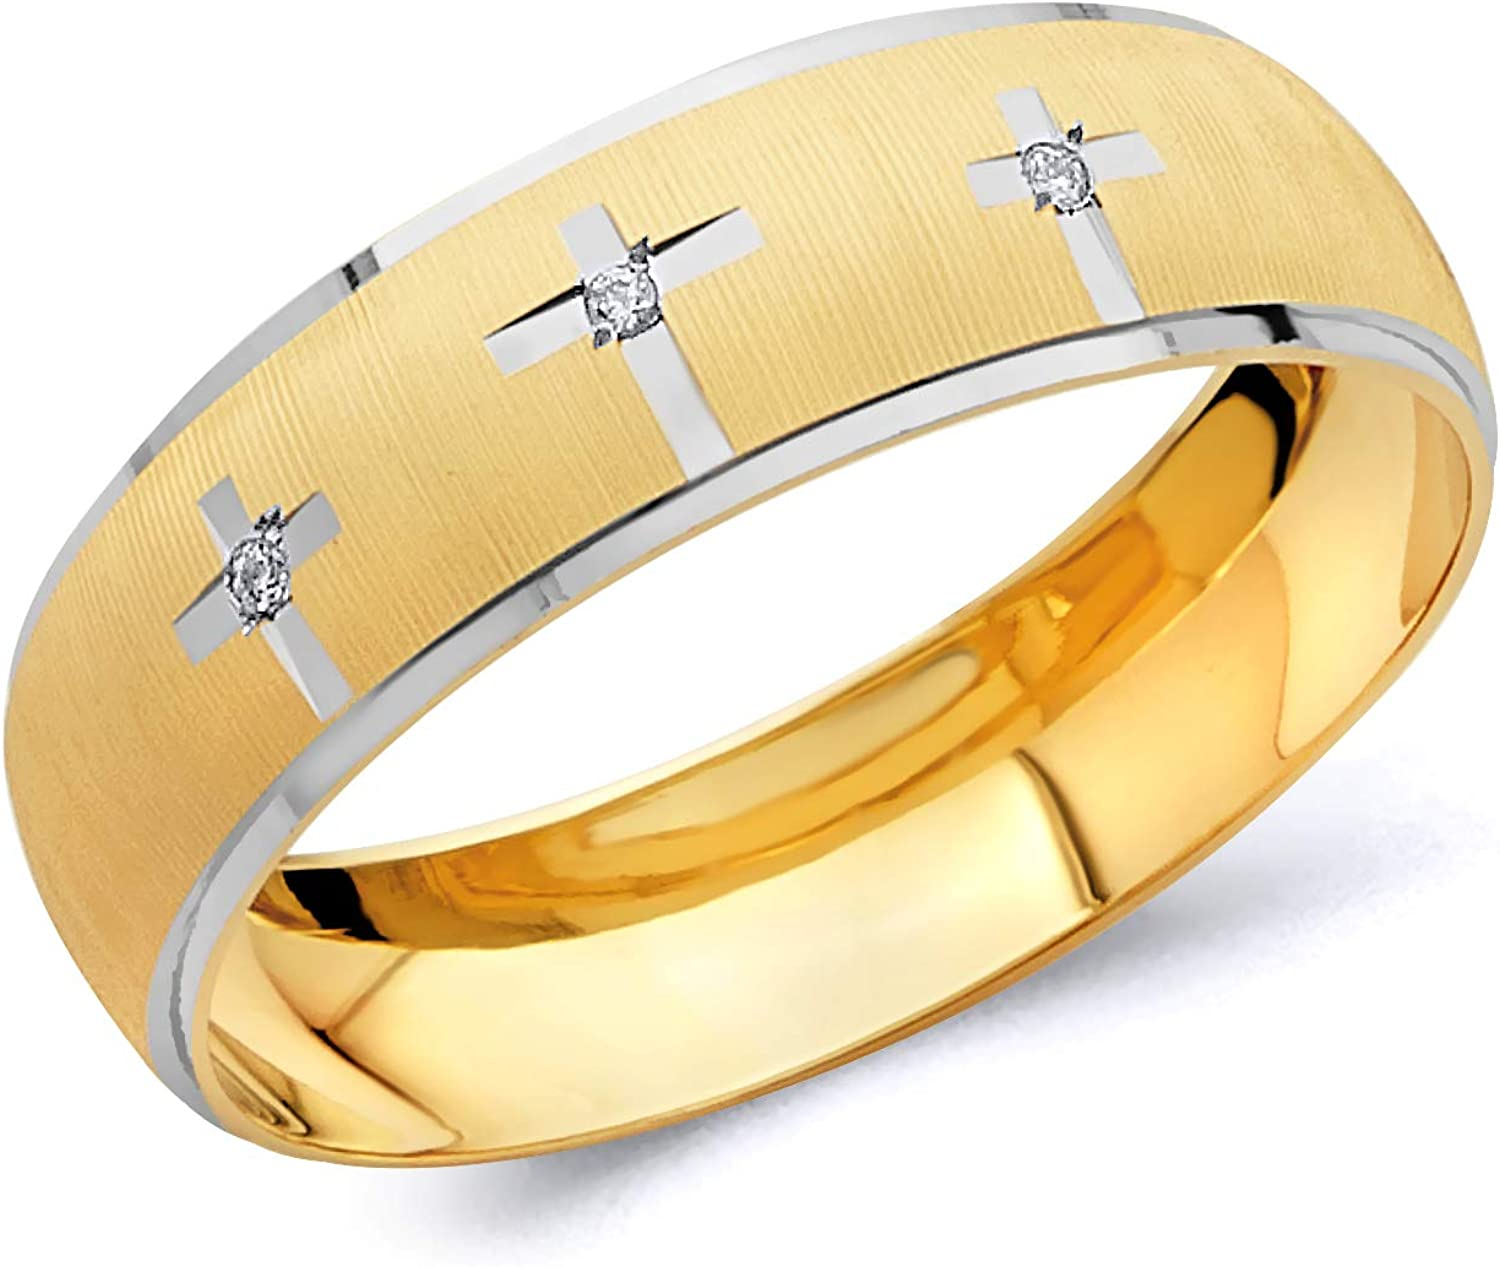 Wellingsale Mens Solid 14k Two 2 Tone White and Yellow Gold Polished Diamond Cut CZ Cubic Zirconia Wedding Ring Band